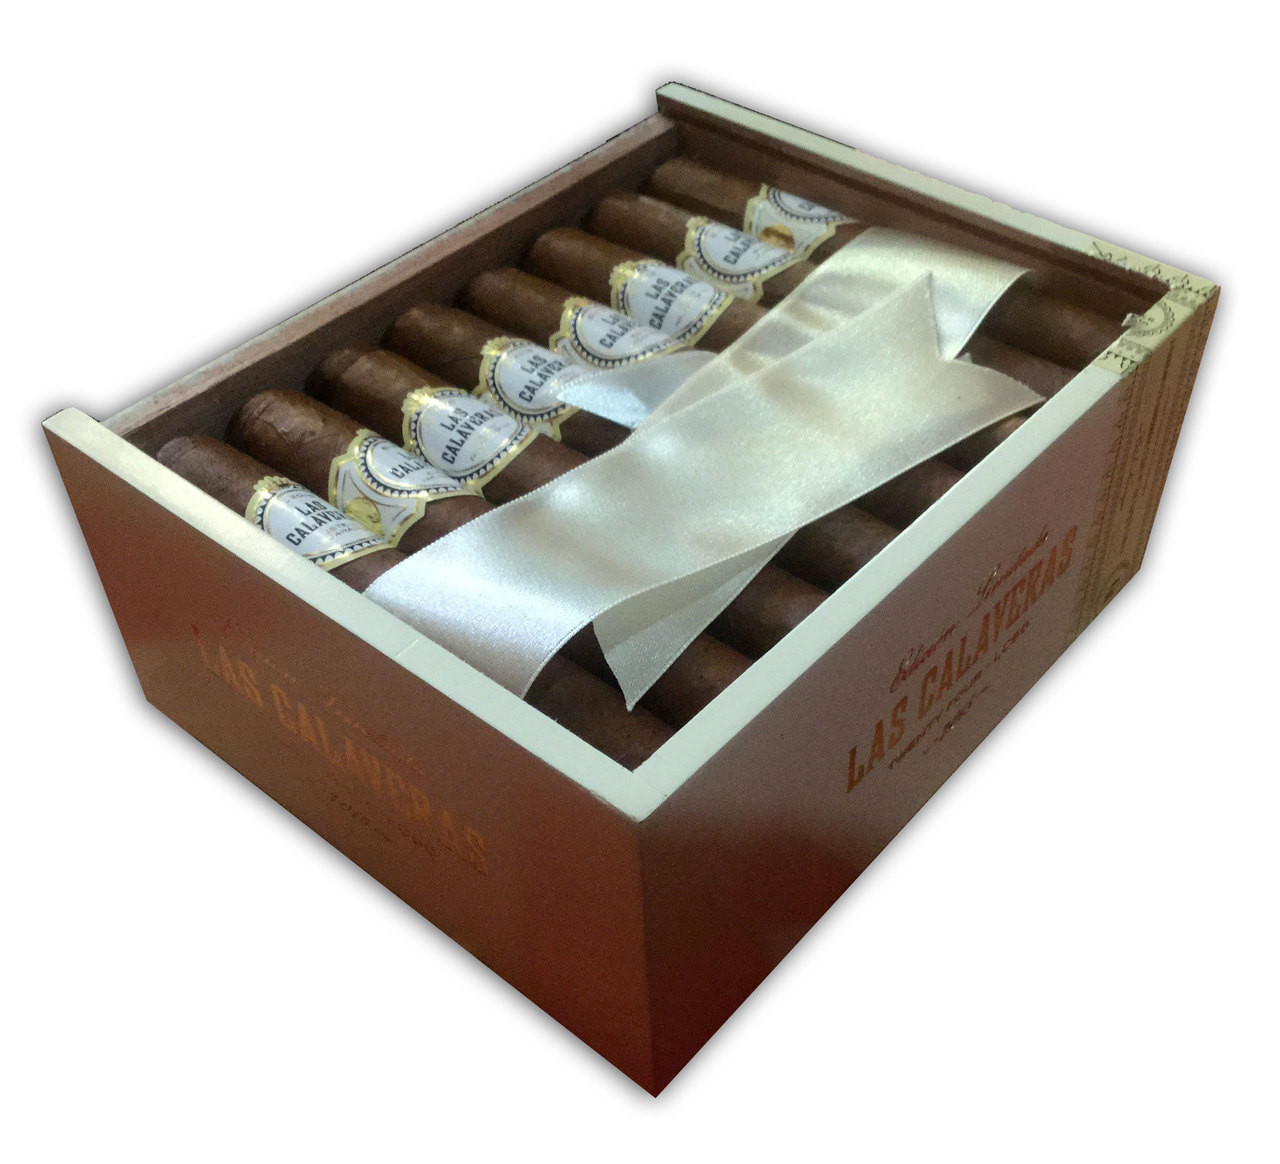 Shop Now Las Calaveras Edicion Limitada 2015 LC46 Corona Gorda Cigars - Dark Natural Box of 24 --> Singles at $8.96, 5 Packs at $45.99, Boxes at $194.99